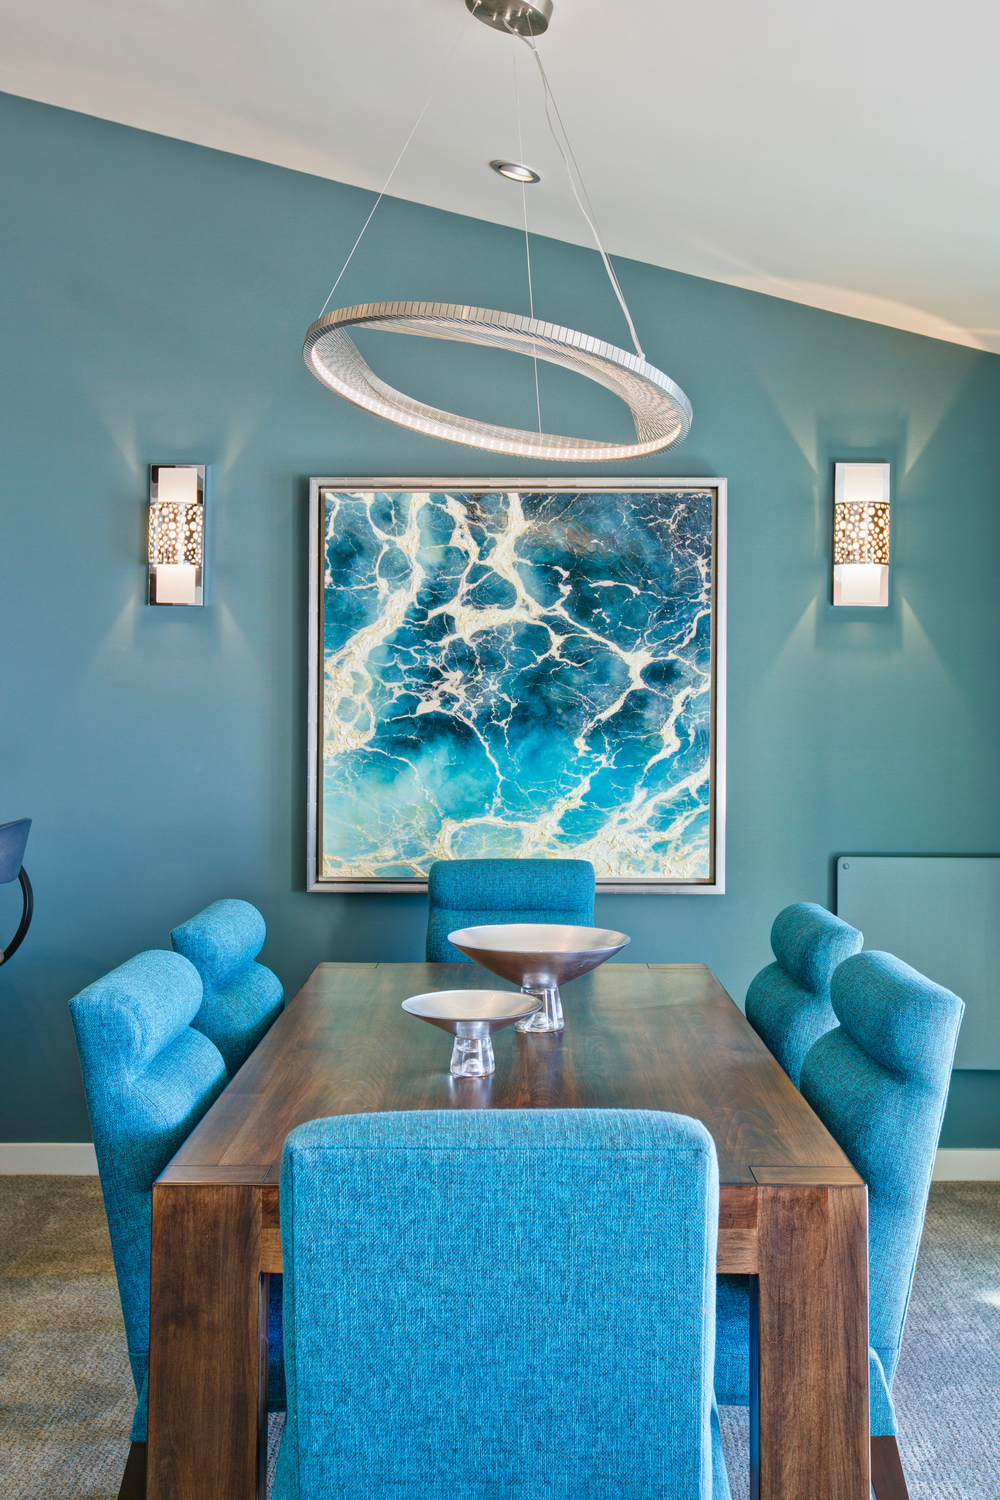 SOLANA BEACH DINING ROOM SIGNATURE DESIGNS BONNIE BAGLEY CATLIN.jpg